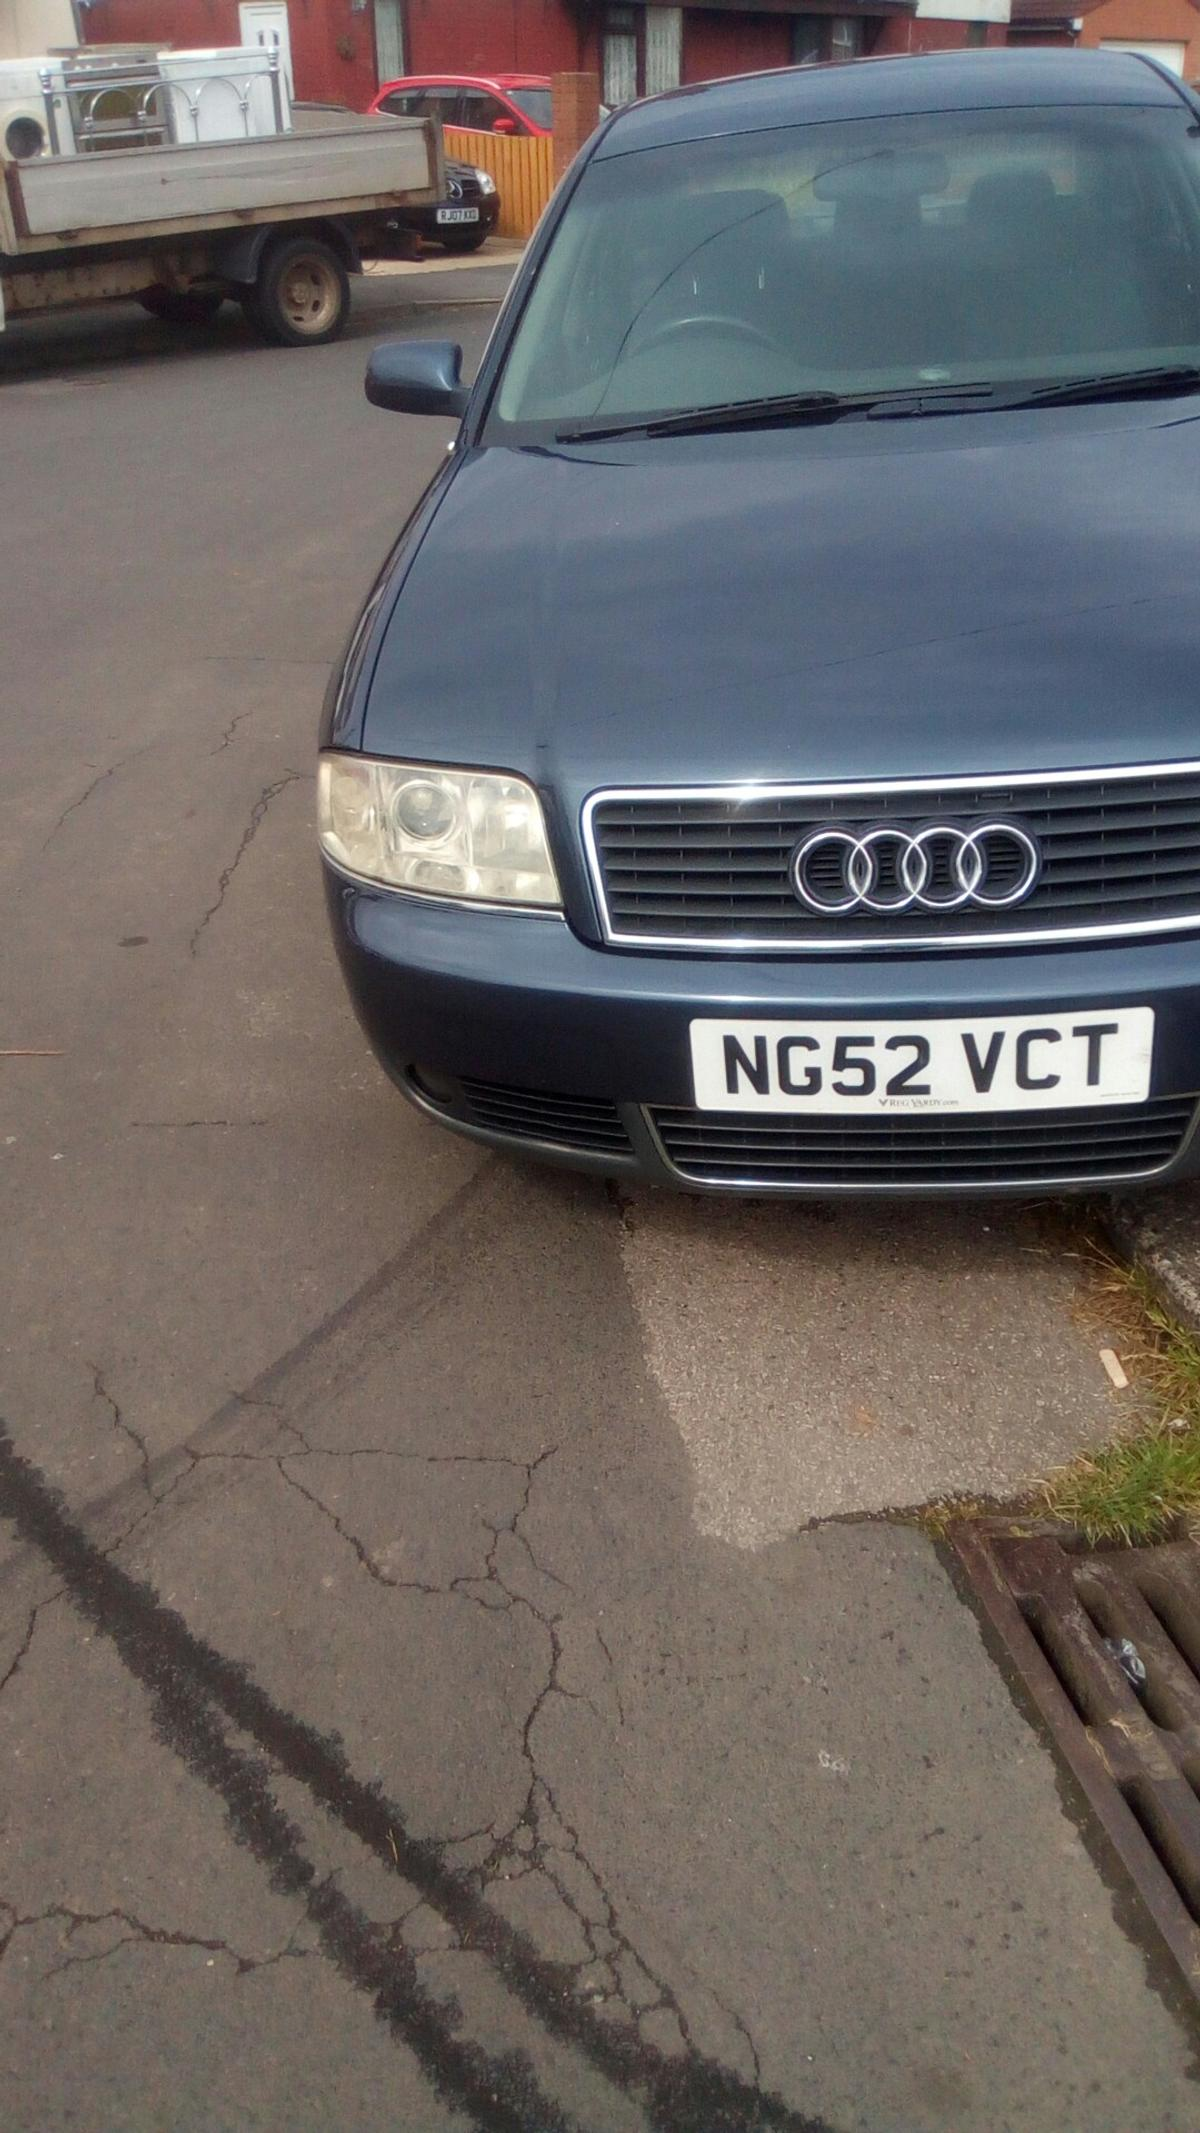 Audi A6 25 Tdi V6 6 Speed 2003 In Ts28 Town For 129500 For Sale